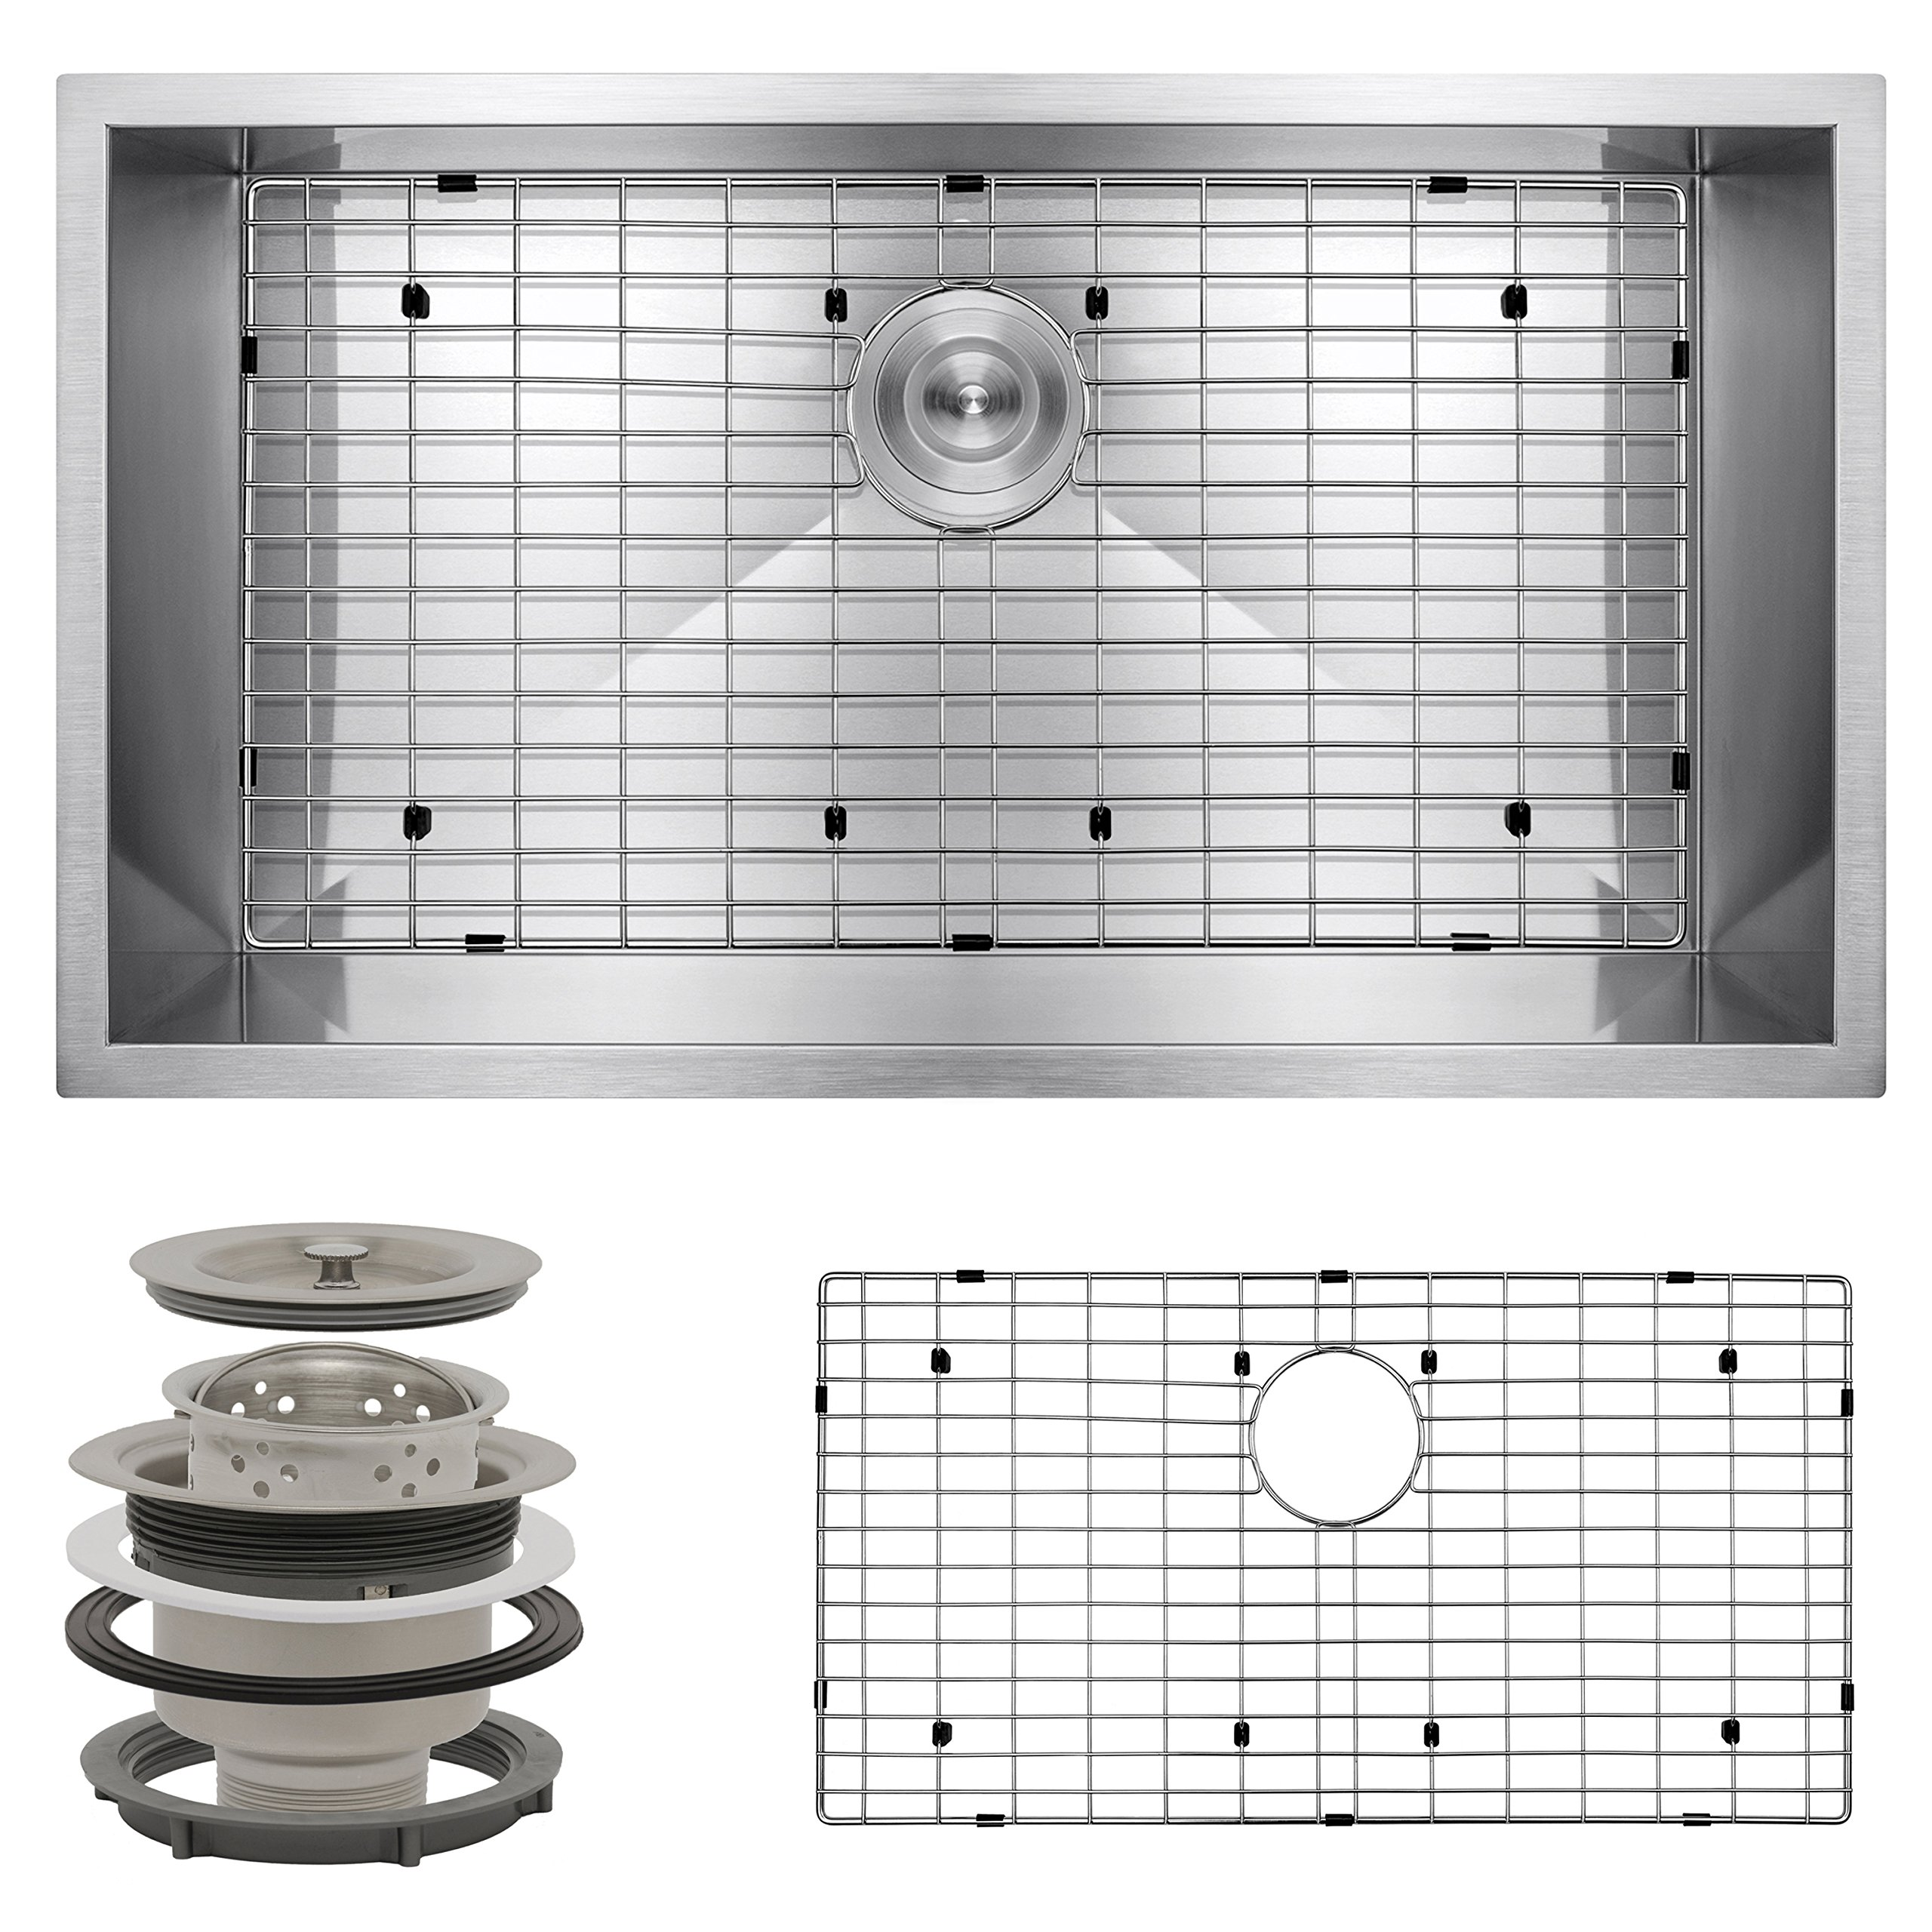 Perfetto Kitchen and Bath 32'' x 18'' x 9'' Undermount Single Bowl 18 Gauge Stainless Steel Kitchen Sink with Drain and Dish Grid by Perfetto Kitchen and Bath